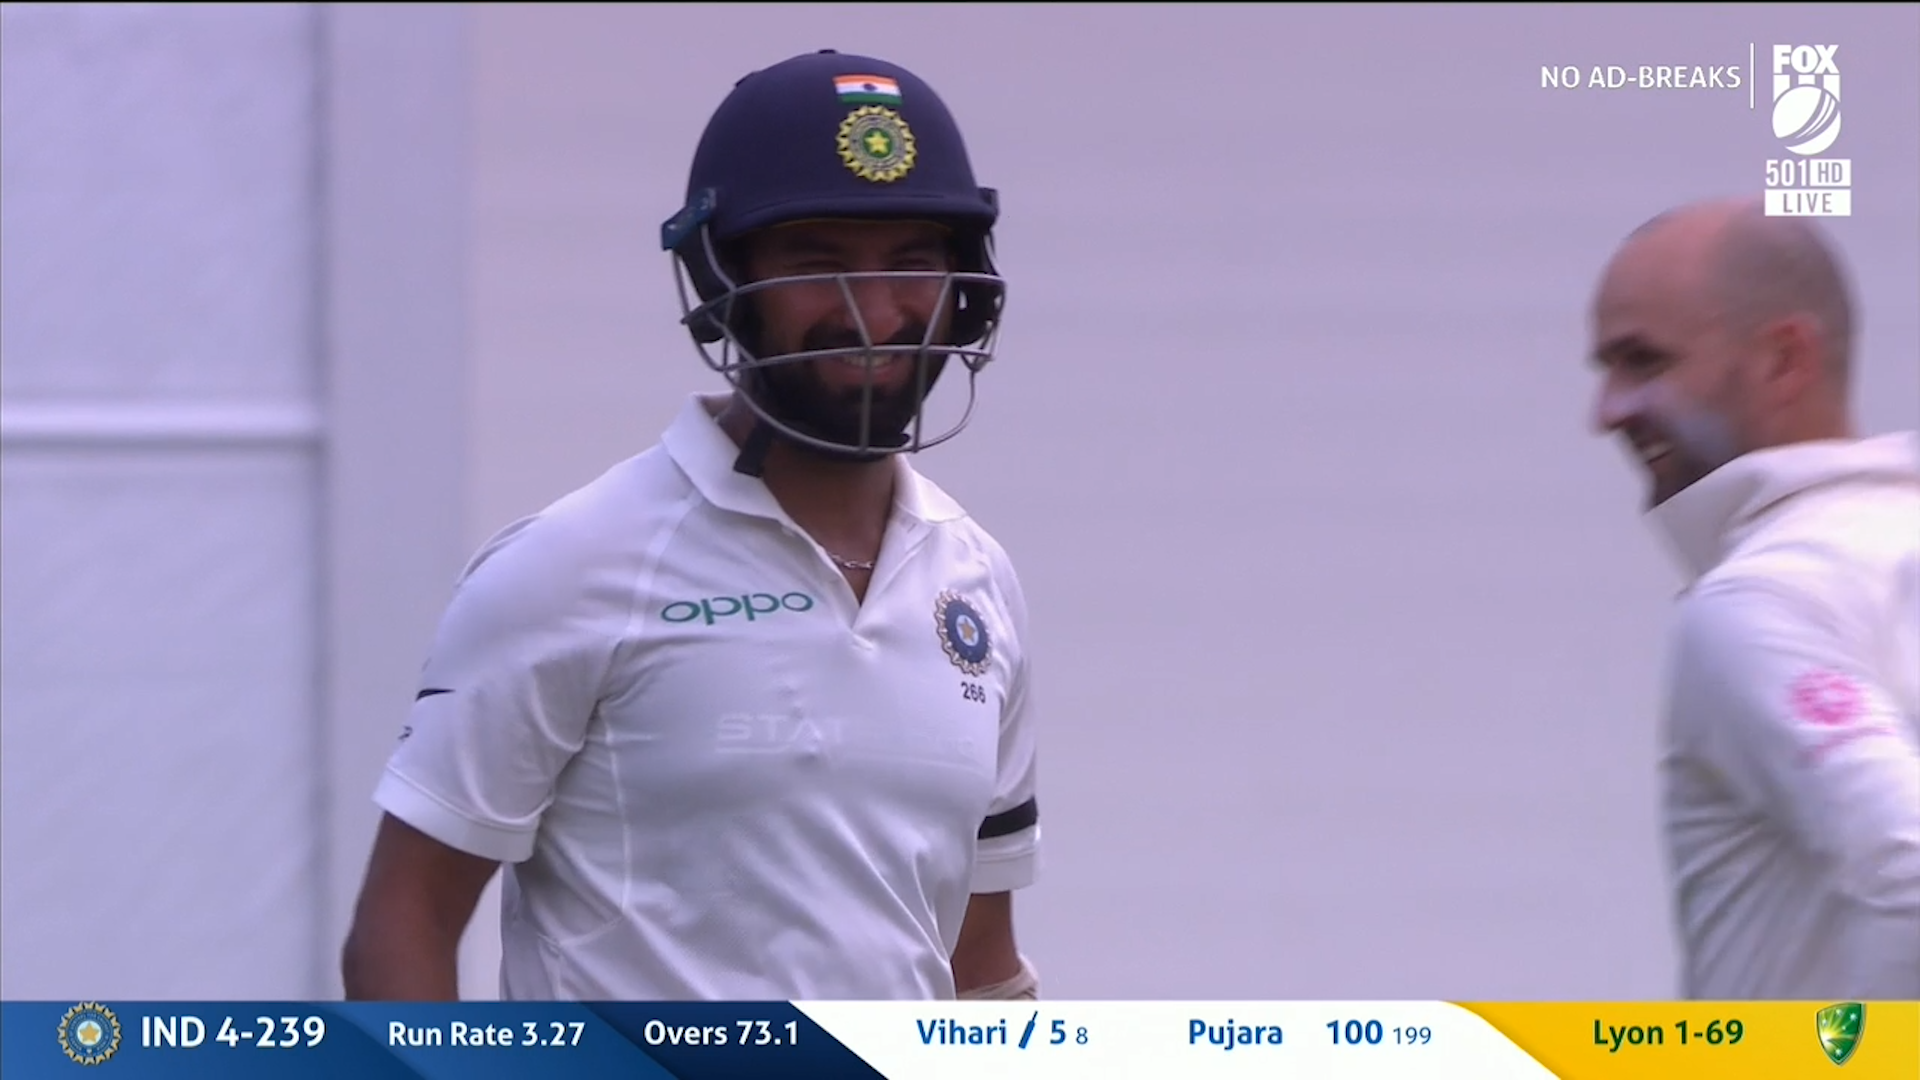 Lyon chirps Pujara after his century